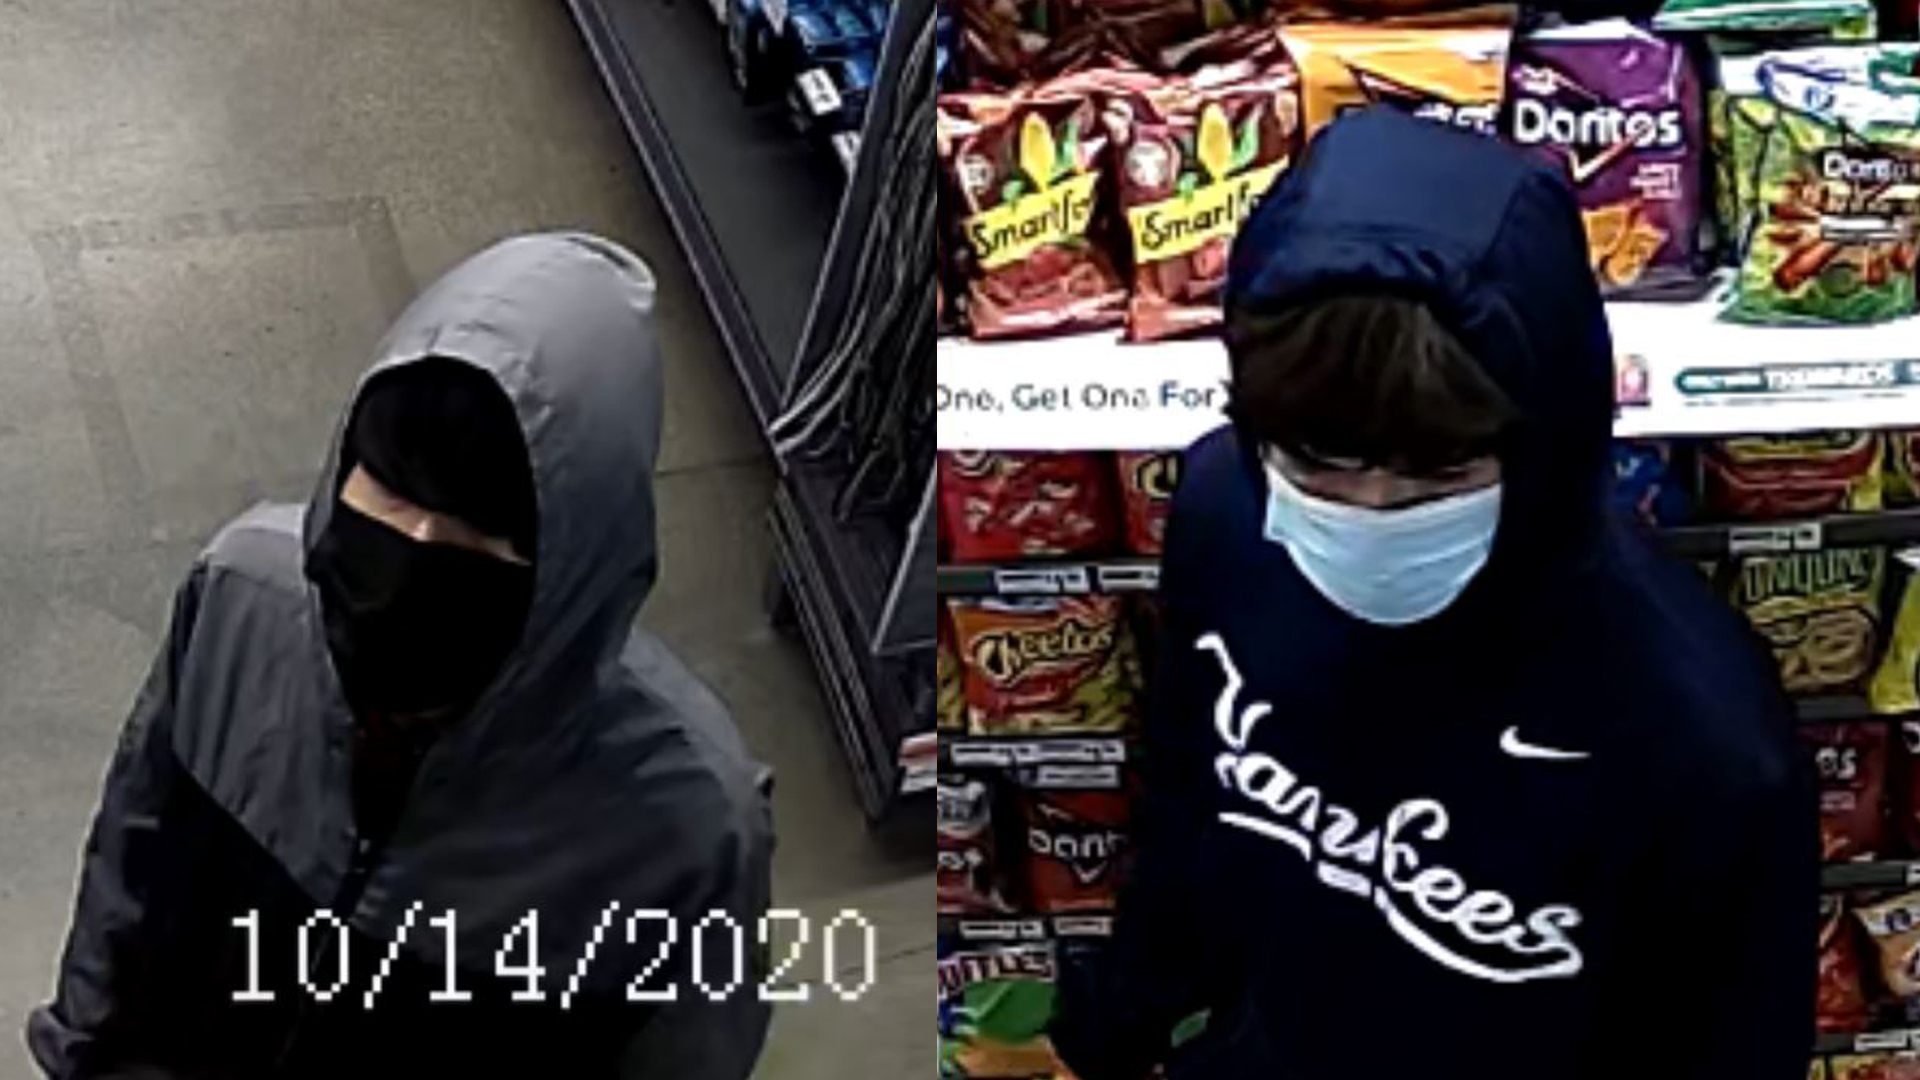 Suspects accused in 7-Eleven robbery on Wednesday, Oct. 14, 2020 (APD Photo)